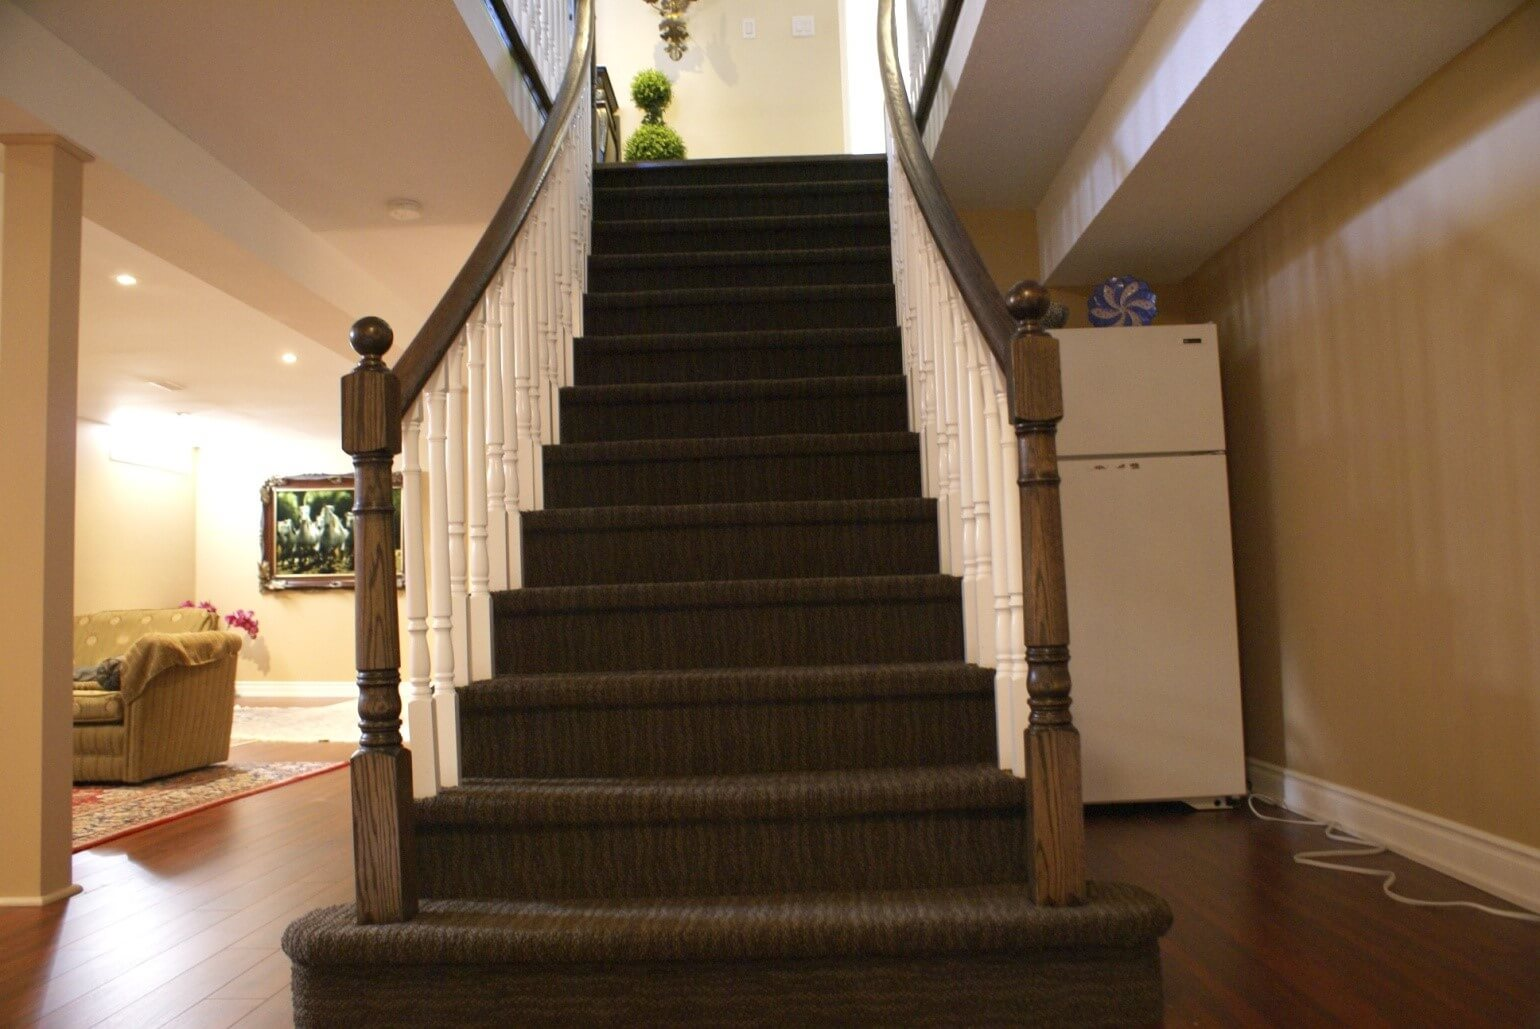 How to Lay Carpet Stairs When Going for Home Renovations ...